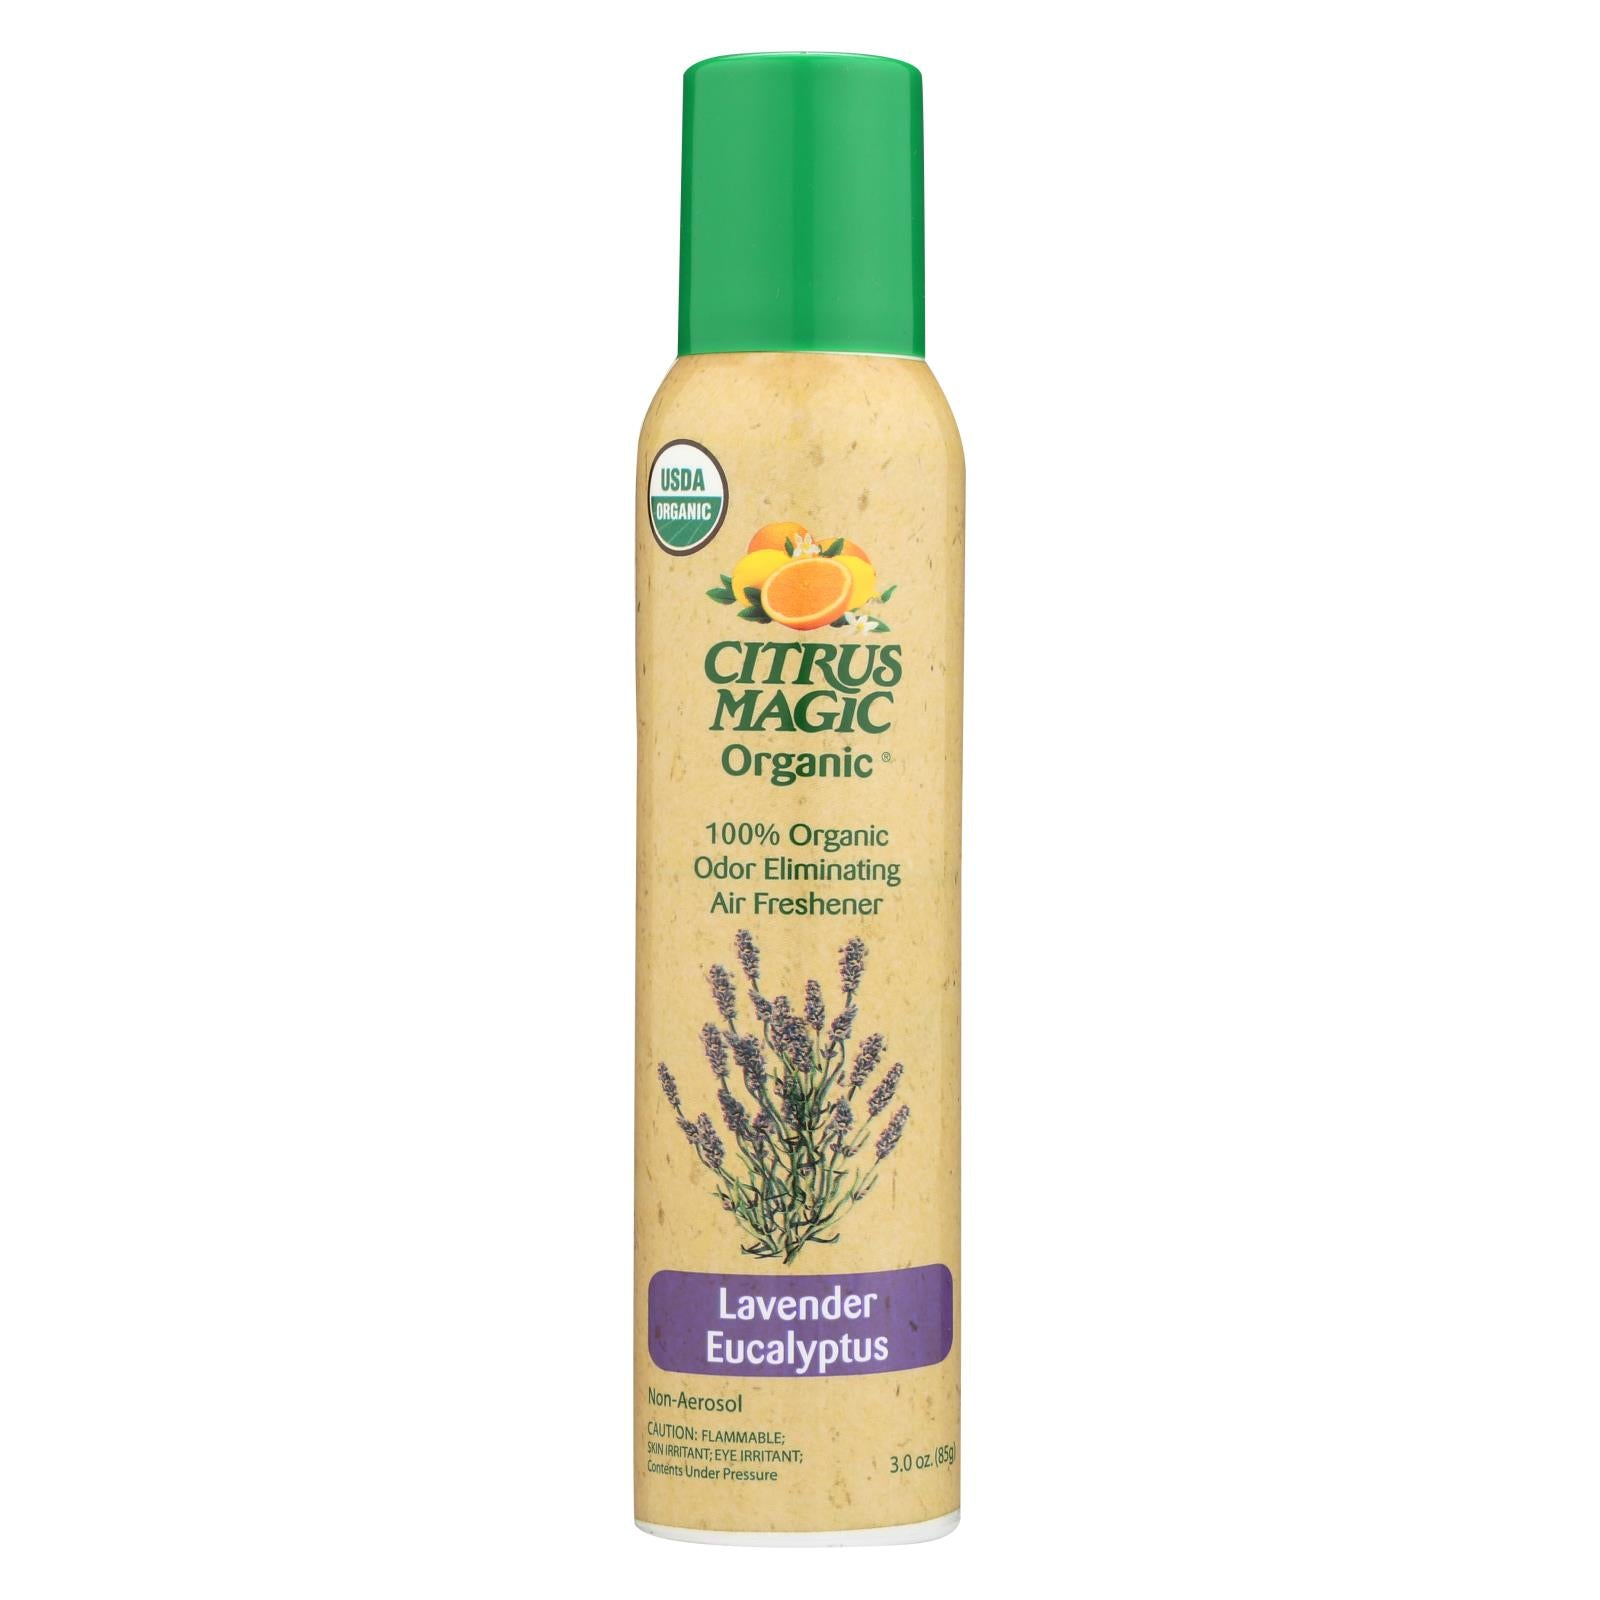 Citrus Magic Air Freshener Odor Eliminating Spray Lavender Eucalyptus 3.5 Oz HG1688662